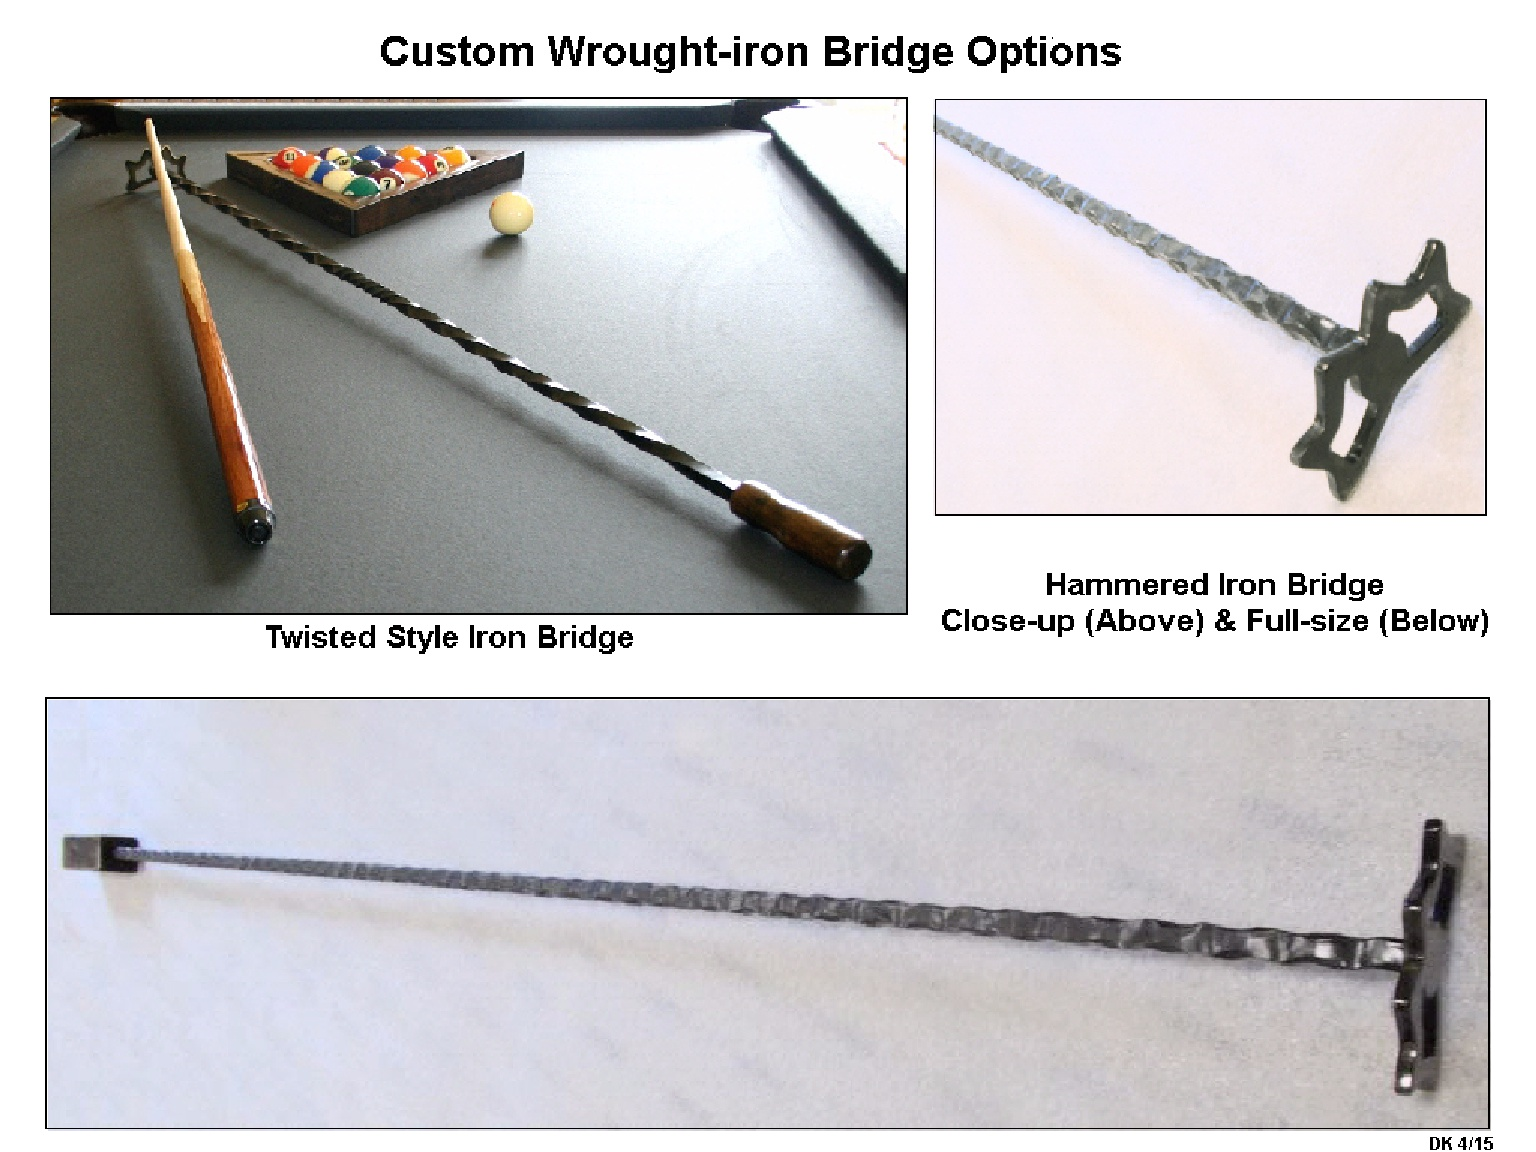 Custom Bridge Options-001.jpg